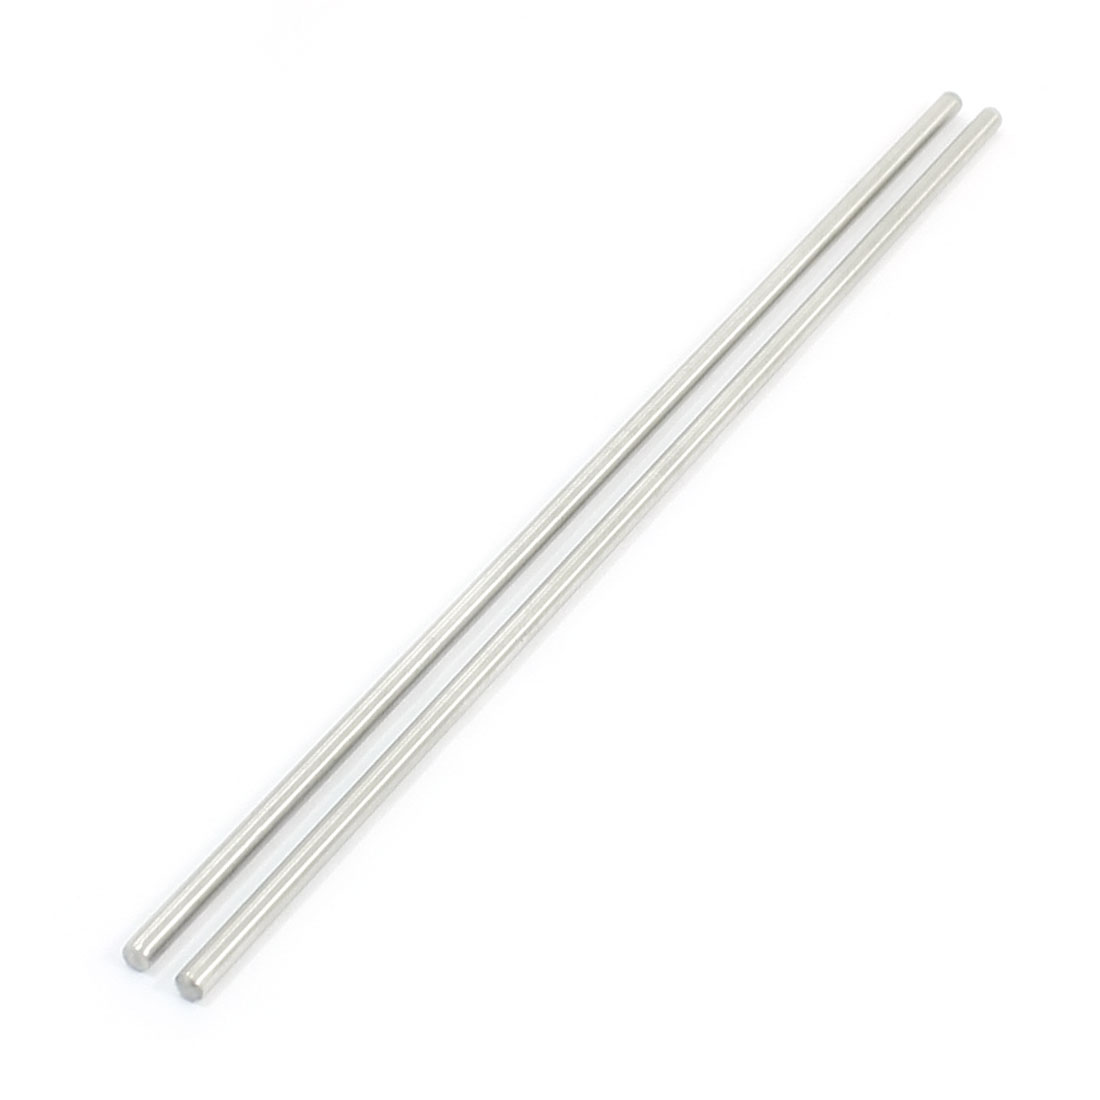 "2Pcs 3mm Diameter Stainless Steel Motion Axle Circular Round Rod Bar 6.7"" Long"